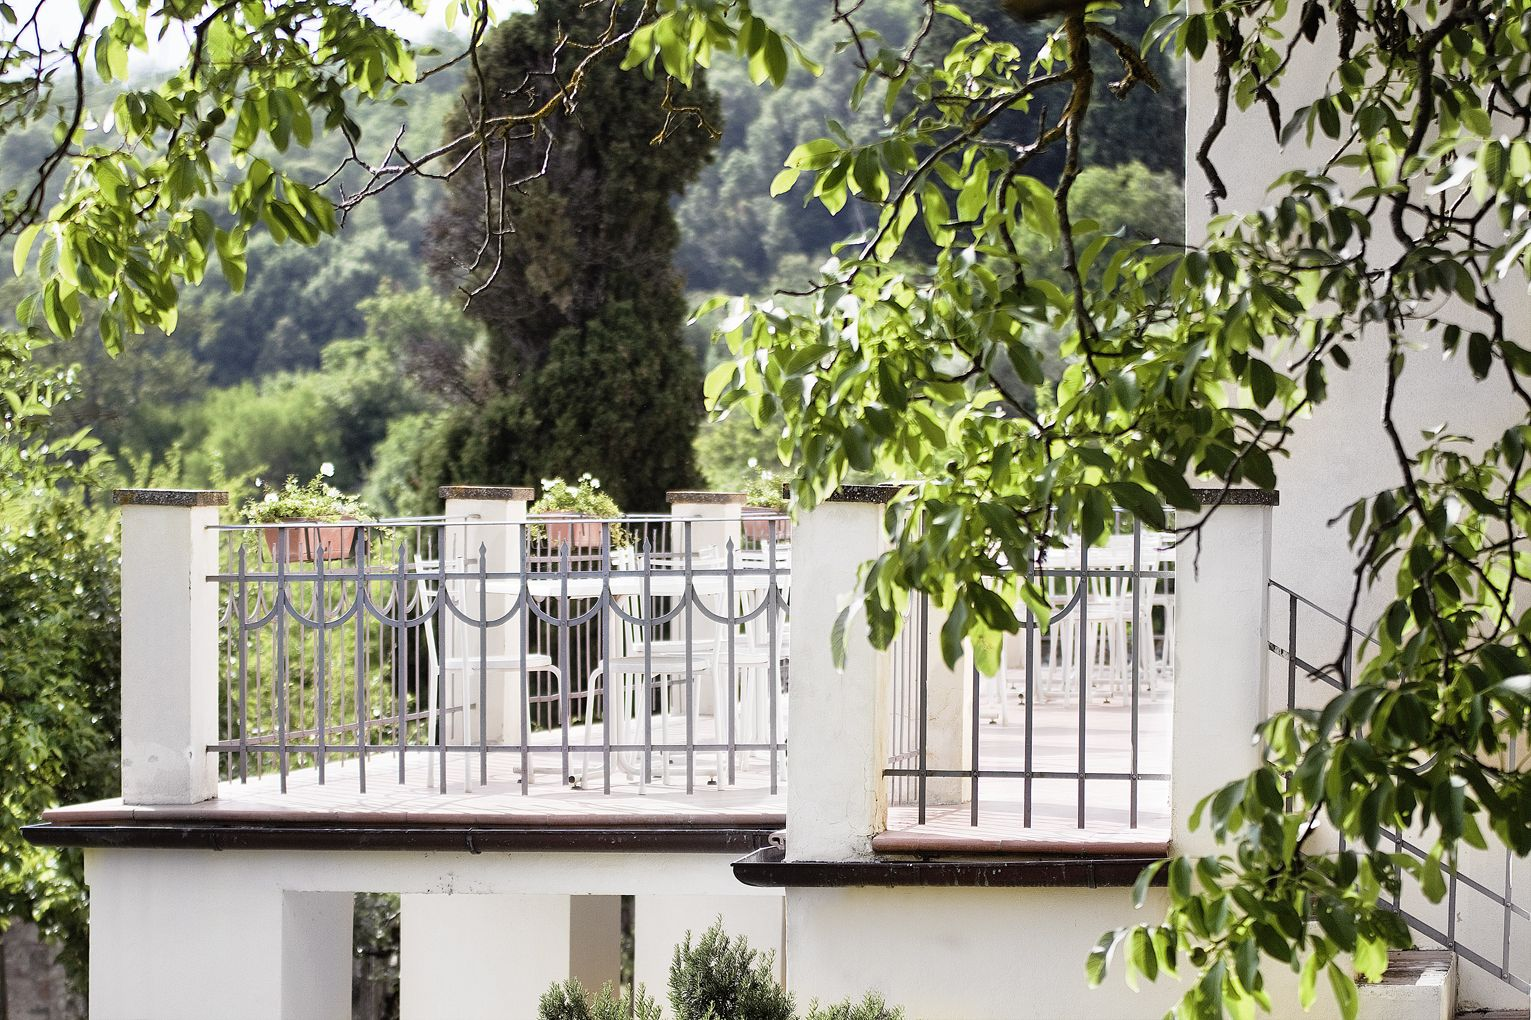 Balcony of the Villa, suitable for an aperitif or cutting the cake